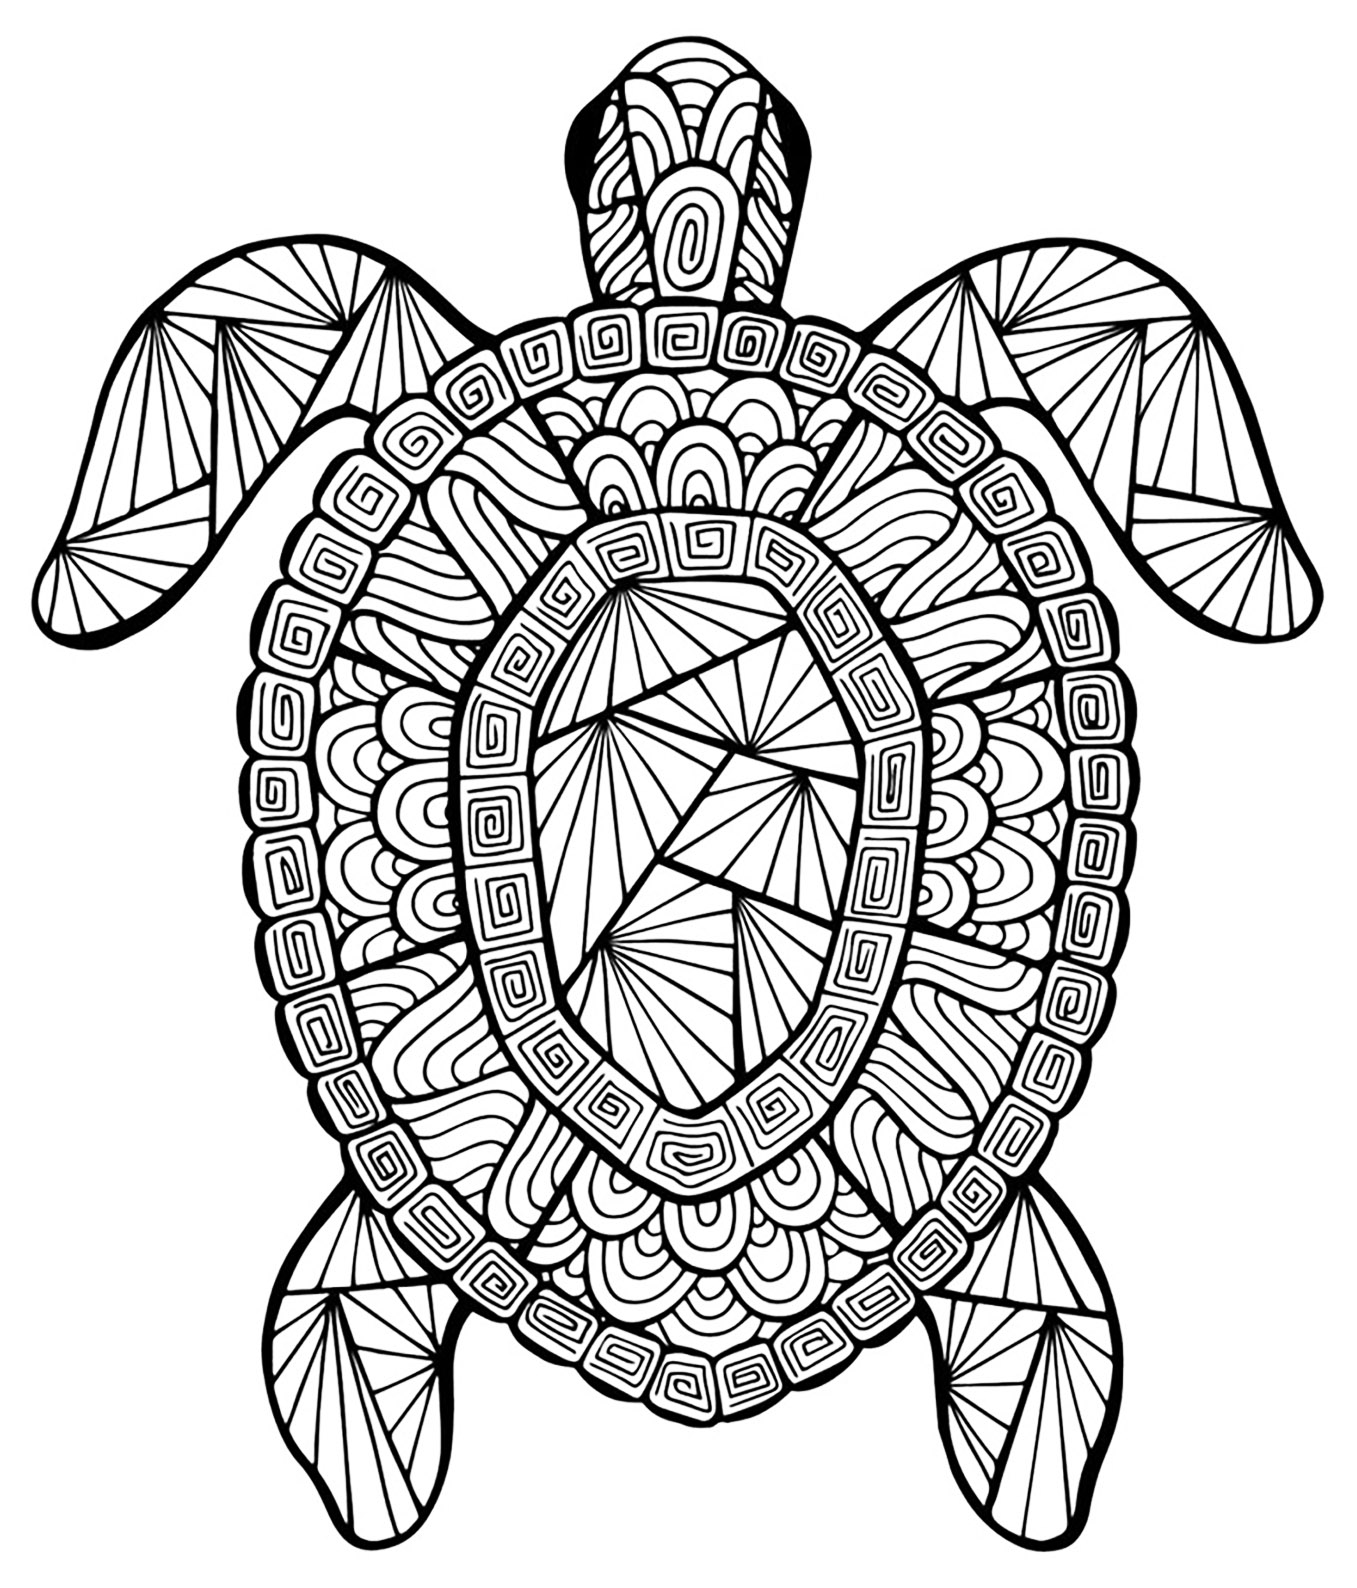 Incredible turtle | Animals - Coloring pages for adults ...